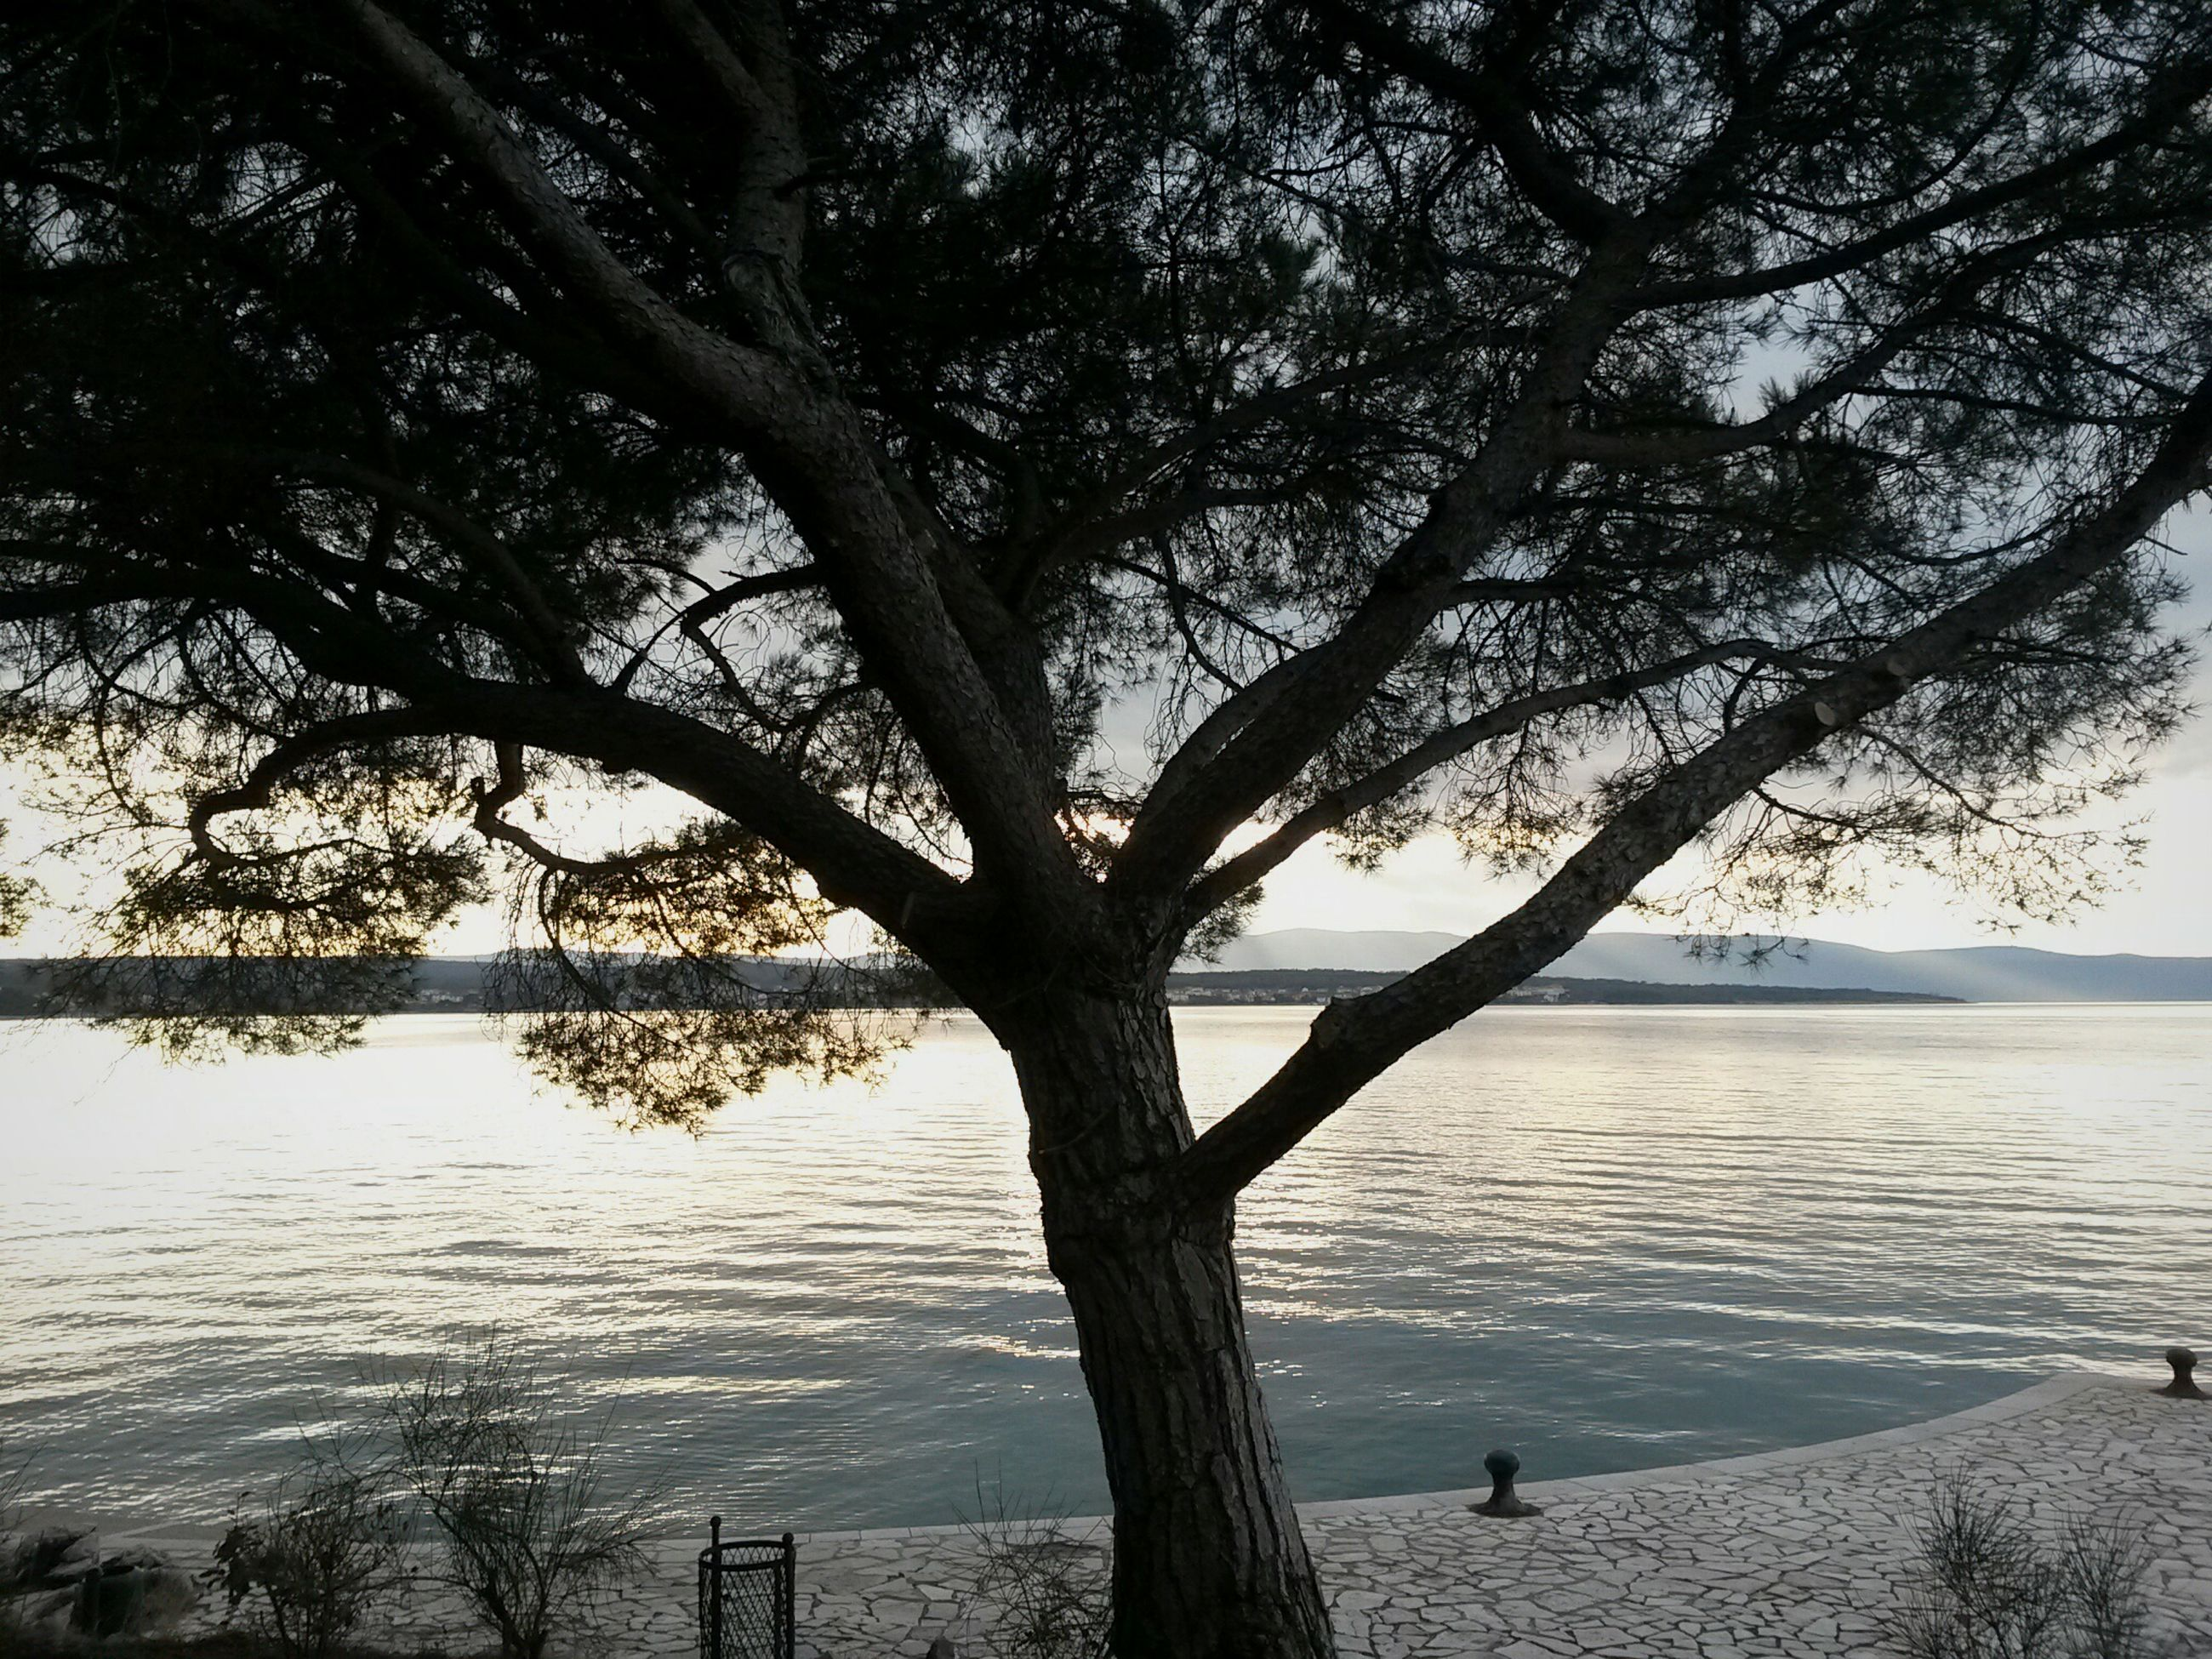 tree, water, branch, tranquility, tree trunk, sea, tranquil scene, nature, beauty in nature, scenics, beach, sky, shore, lake, growth, outdoors, day, sunlight, horizon over water, idyllic